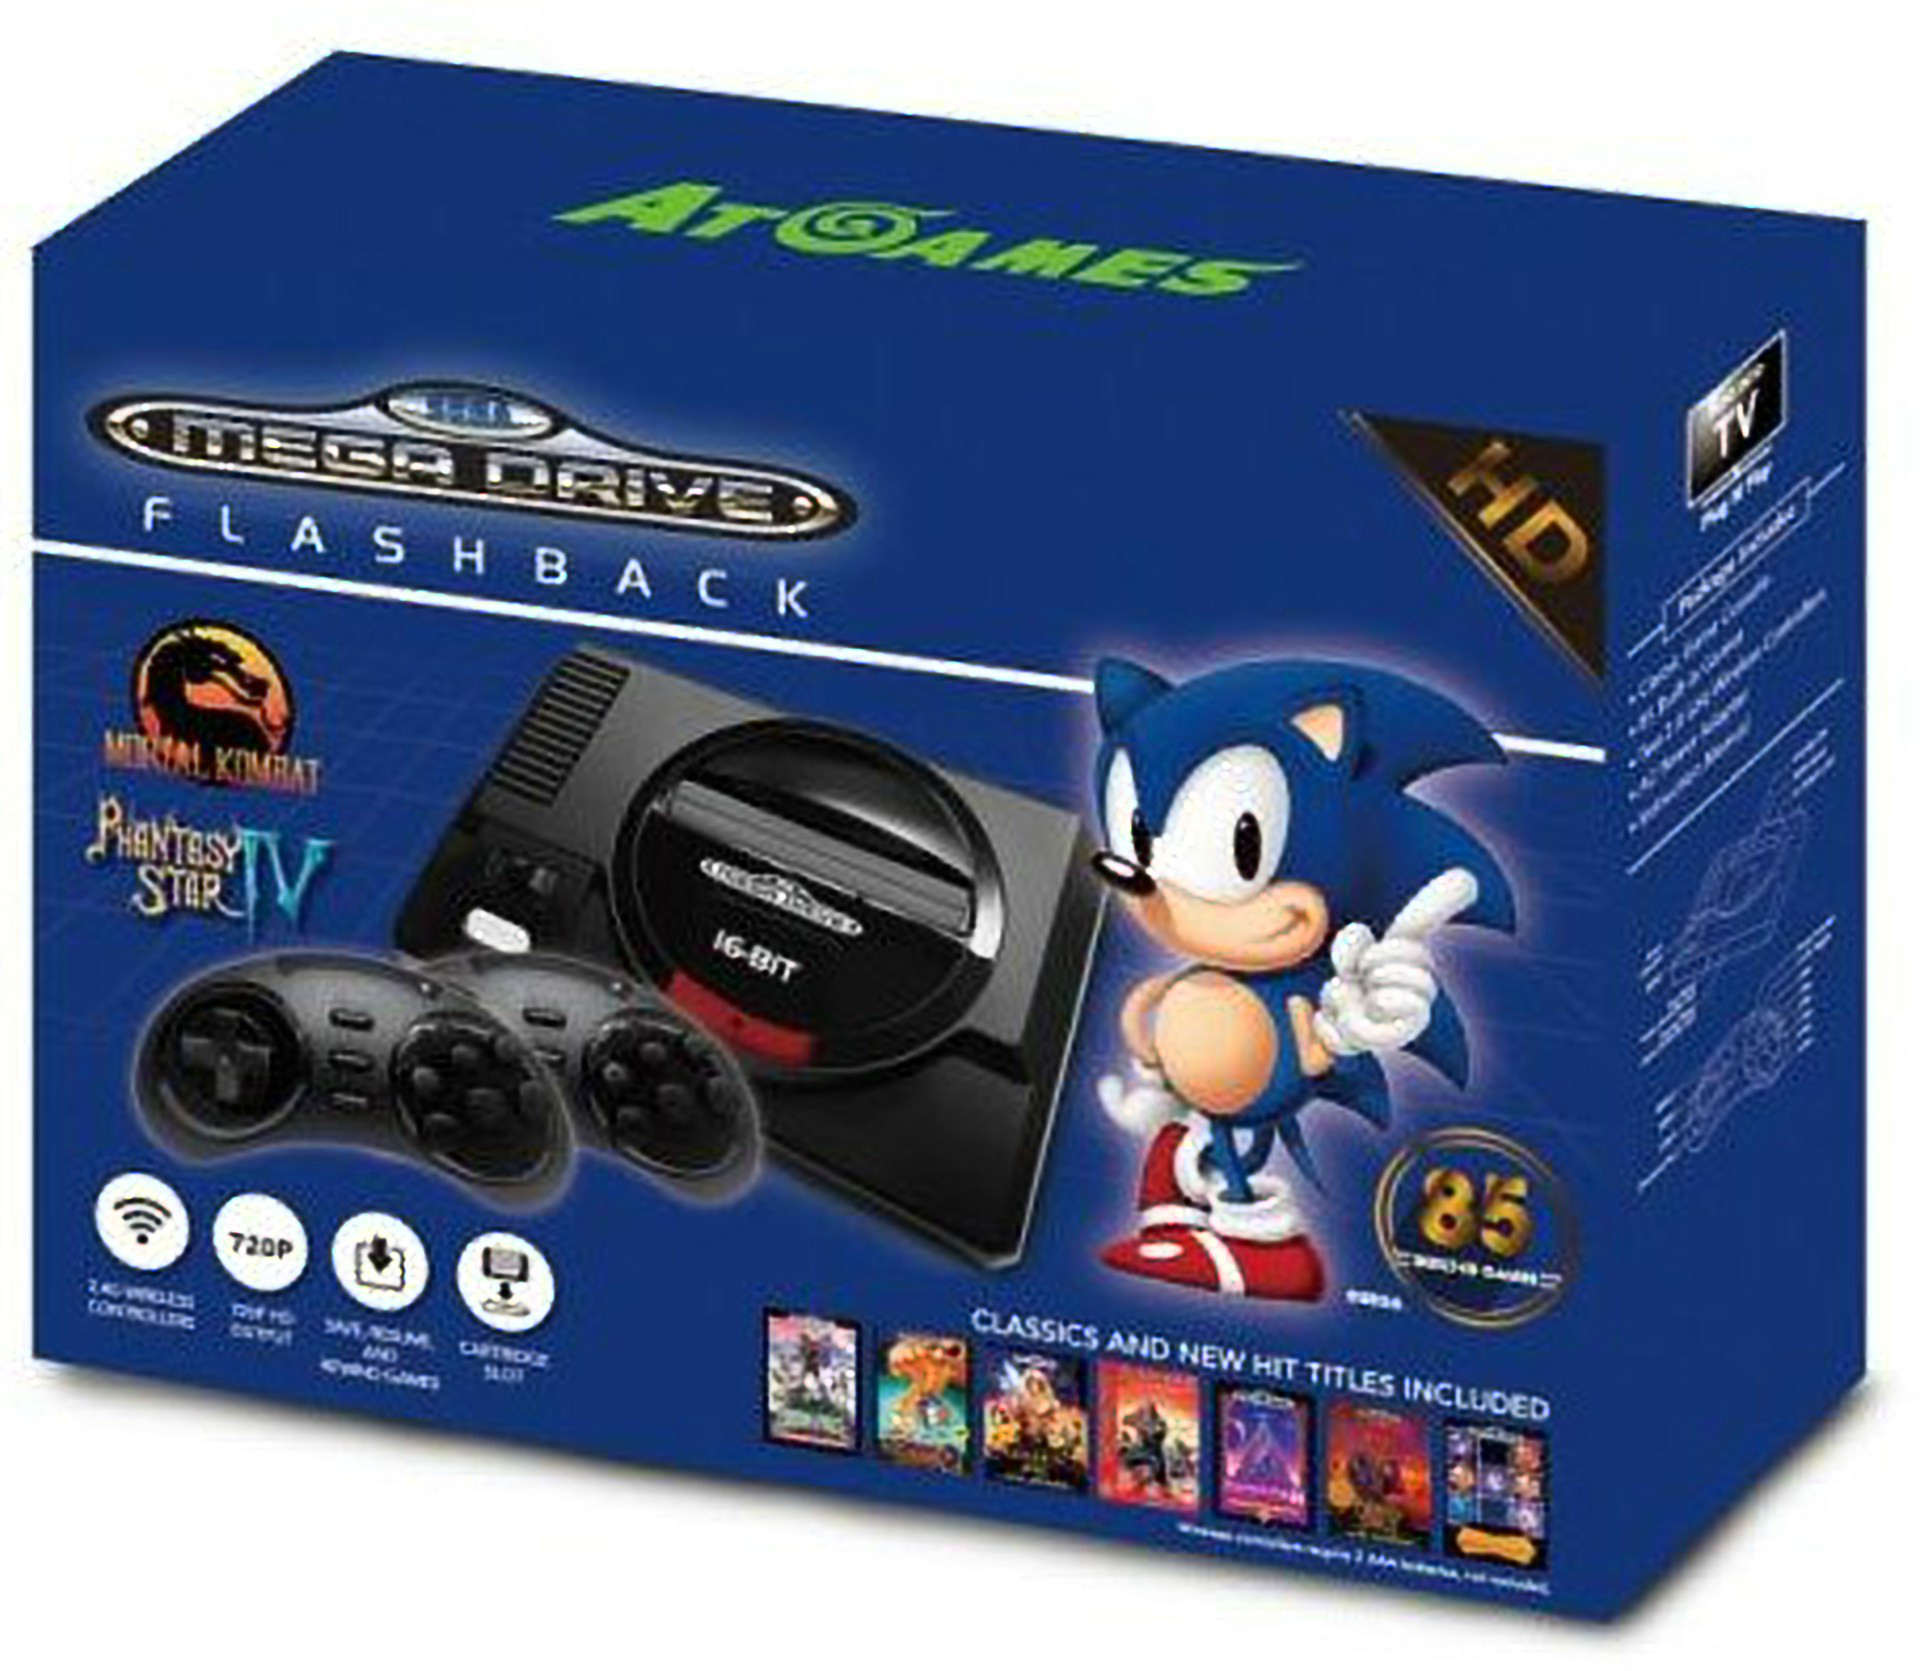 The return of the SEGA Genesis.